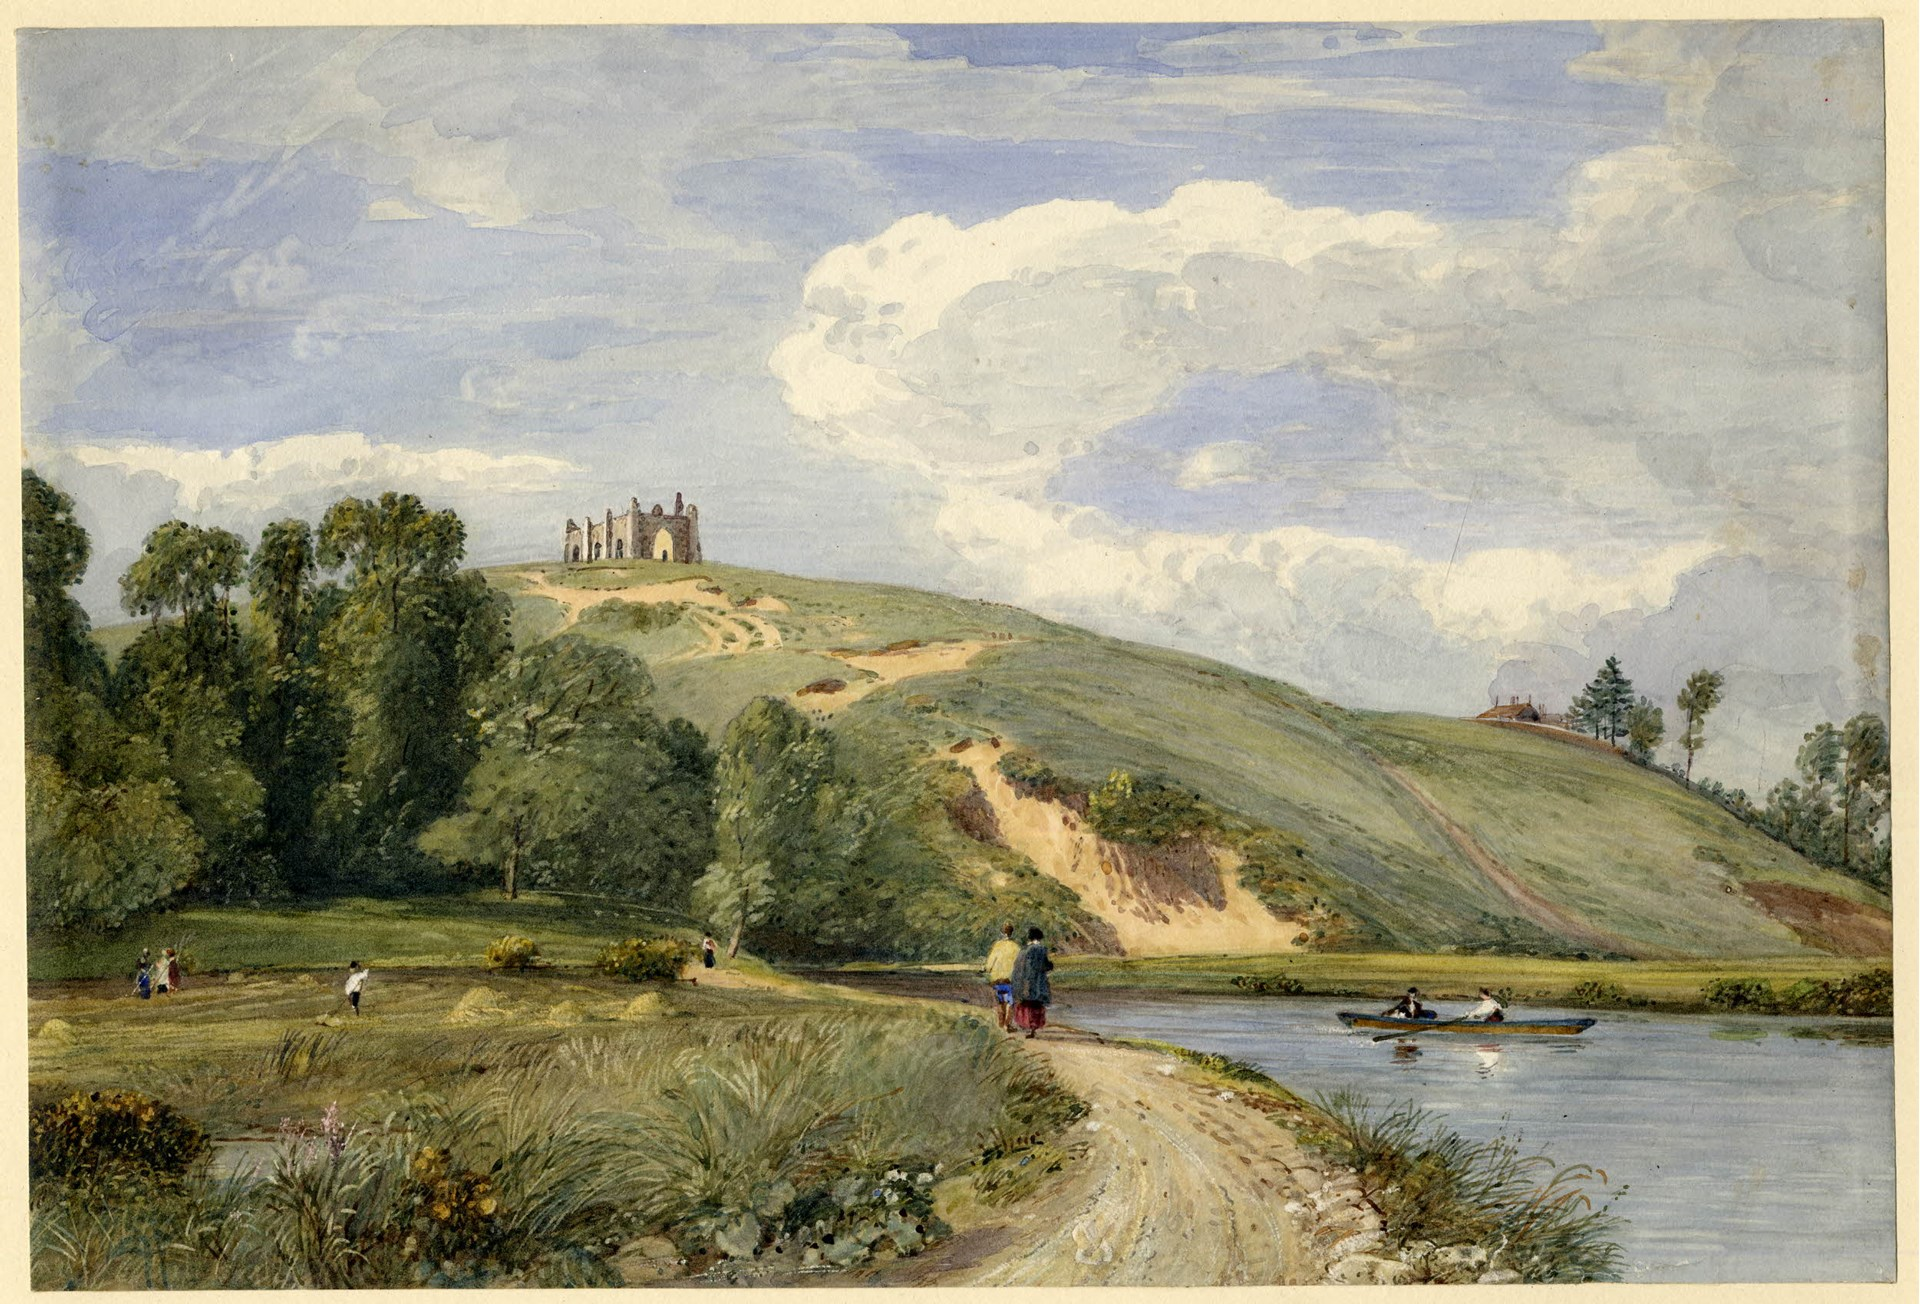 This lovely watercolour of St Catherine's Hill viewed from the meadows is by a rather more obscure artist, Francis Oliver Finch (1802 - 1862), and is reproduced by permission of the British Museum.